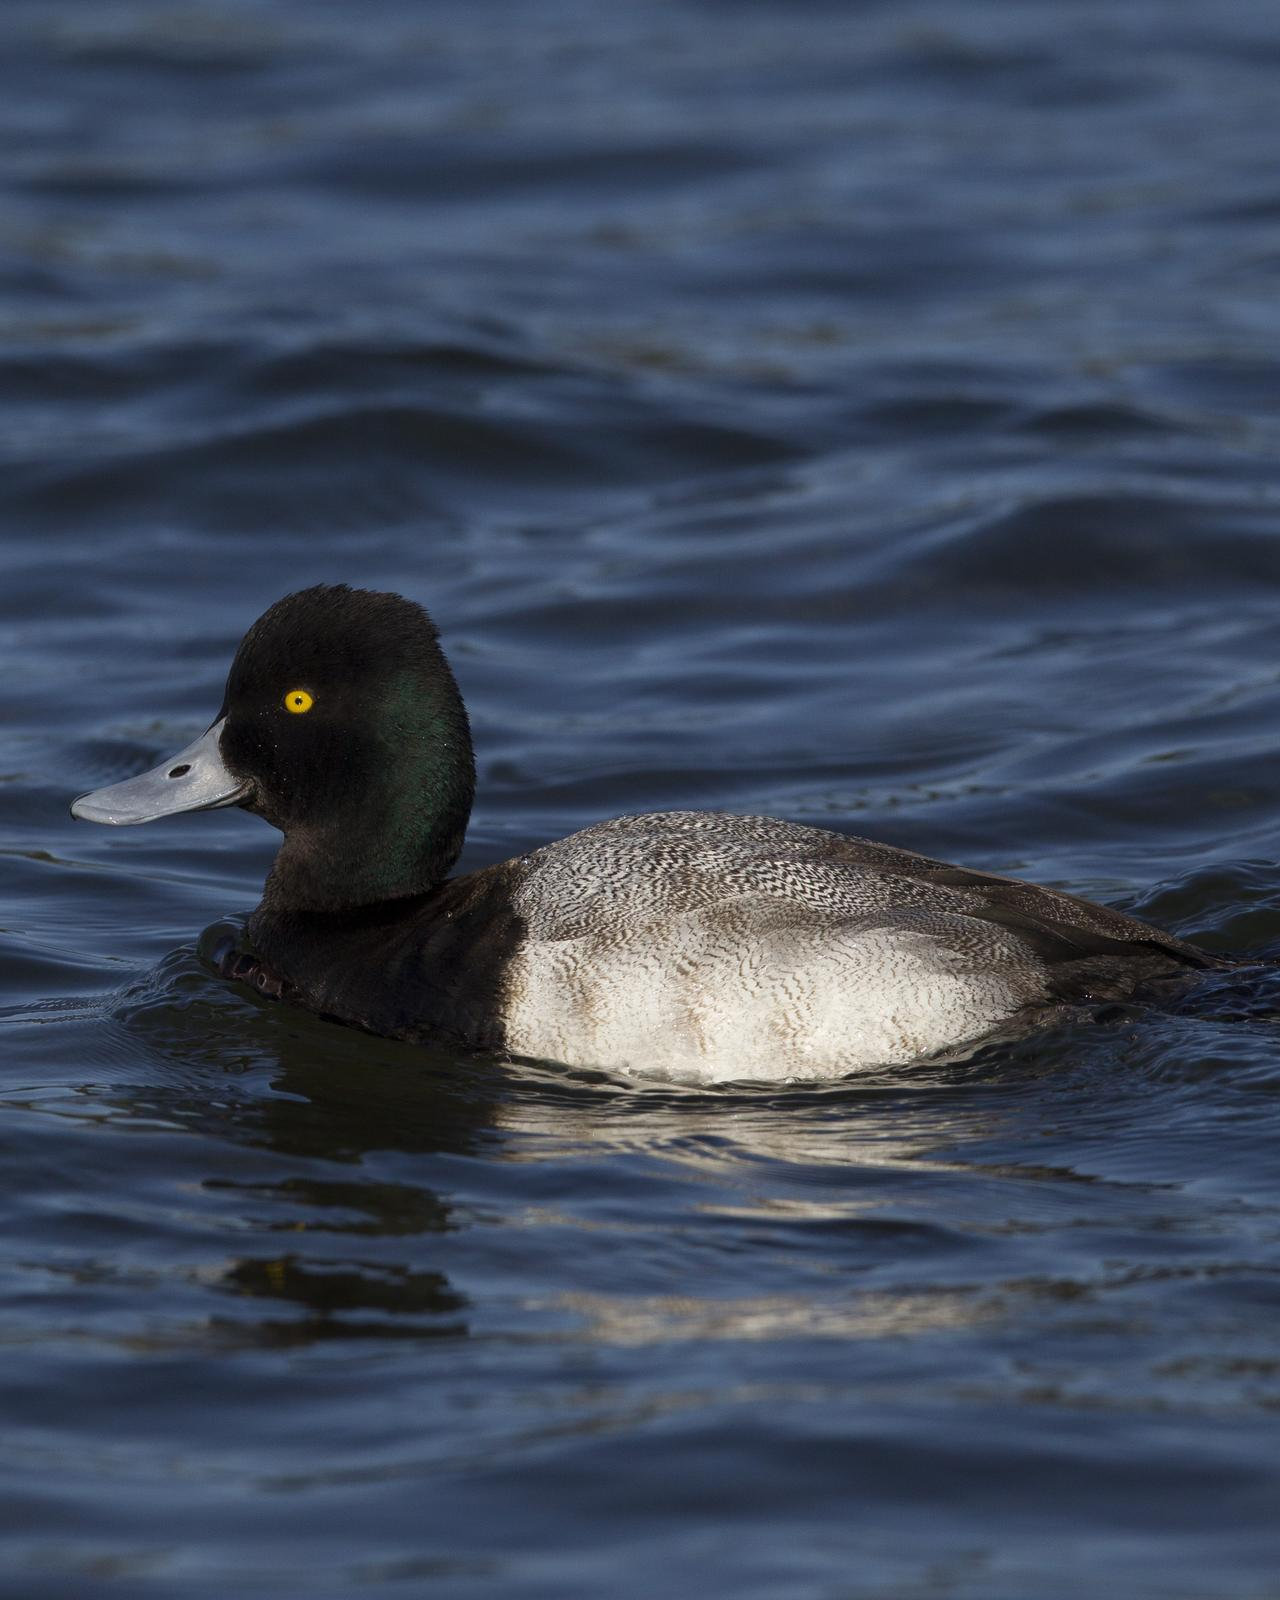 Lesser Scaup Photo by Jeff Moore